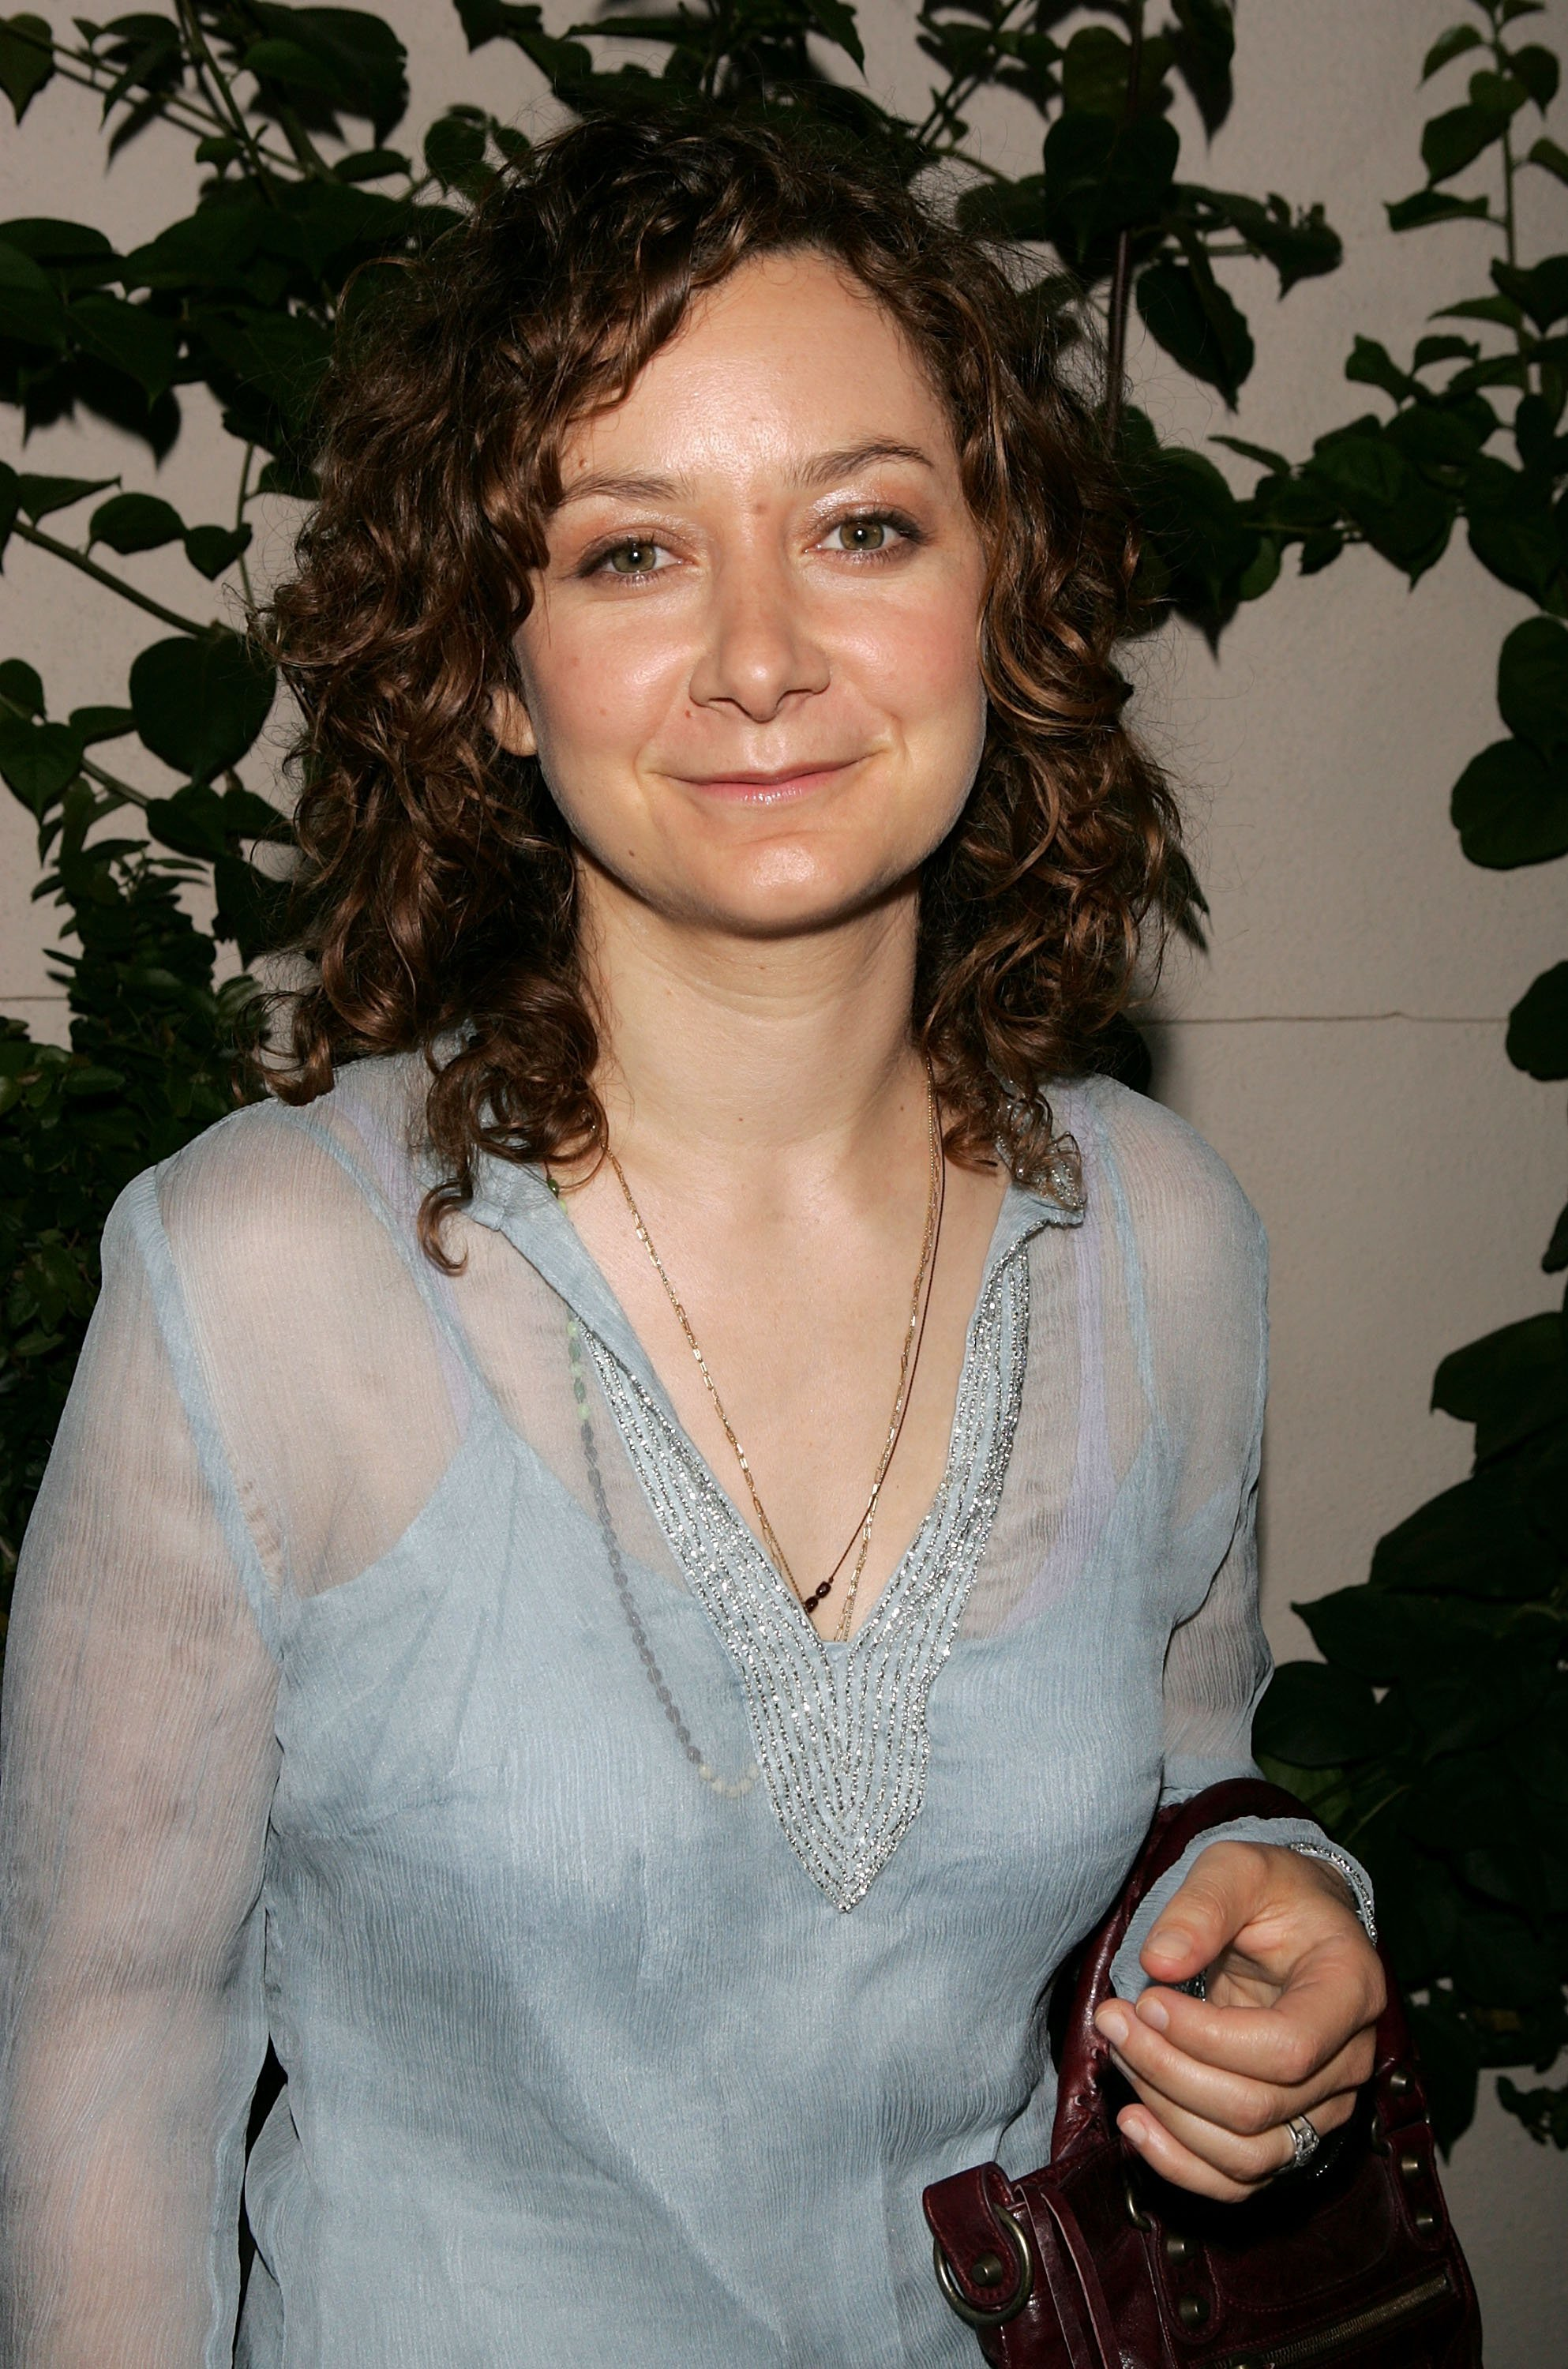 Sara Gilbert attends WB Network's 2005 All Star Celebration at The Cabana Club in Los Angeles in July 2005   Photo: Getty Images